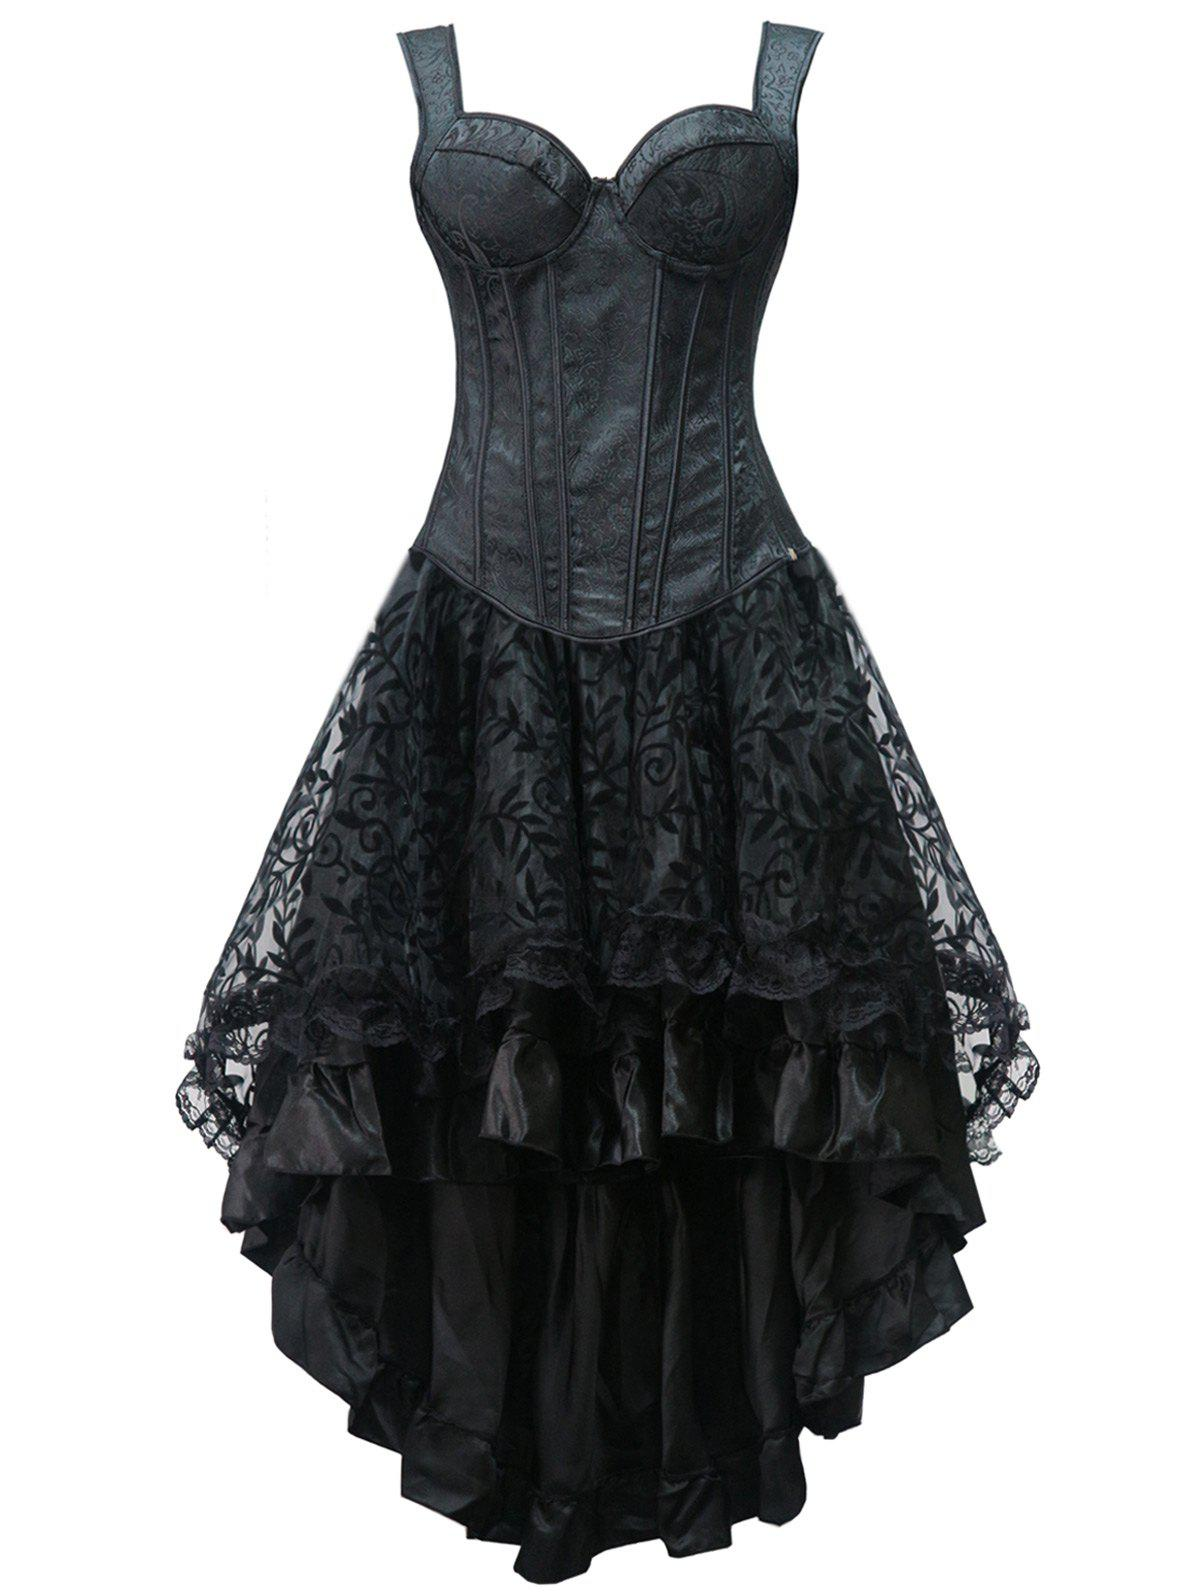 Unique High Low Lace Up Steel Boned Corset Dress